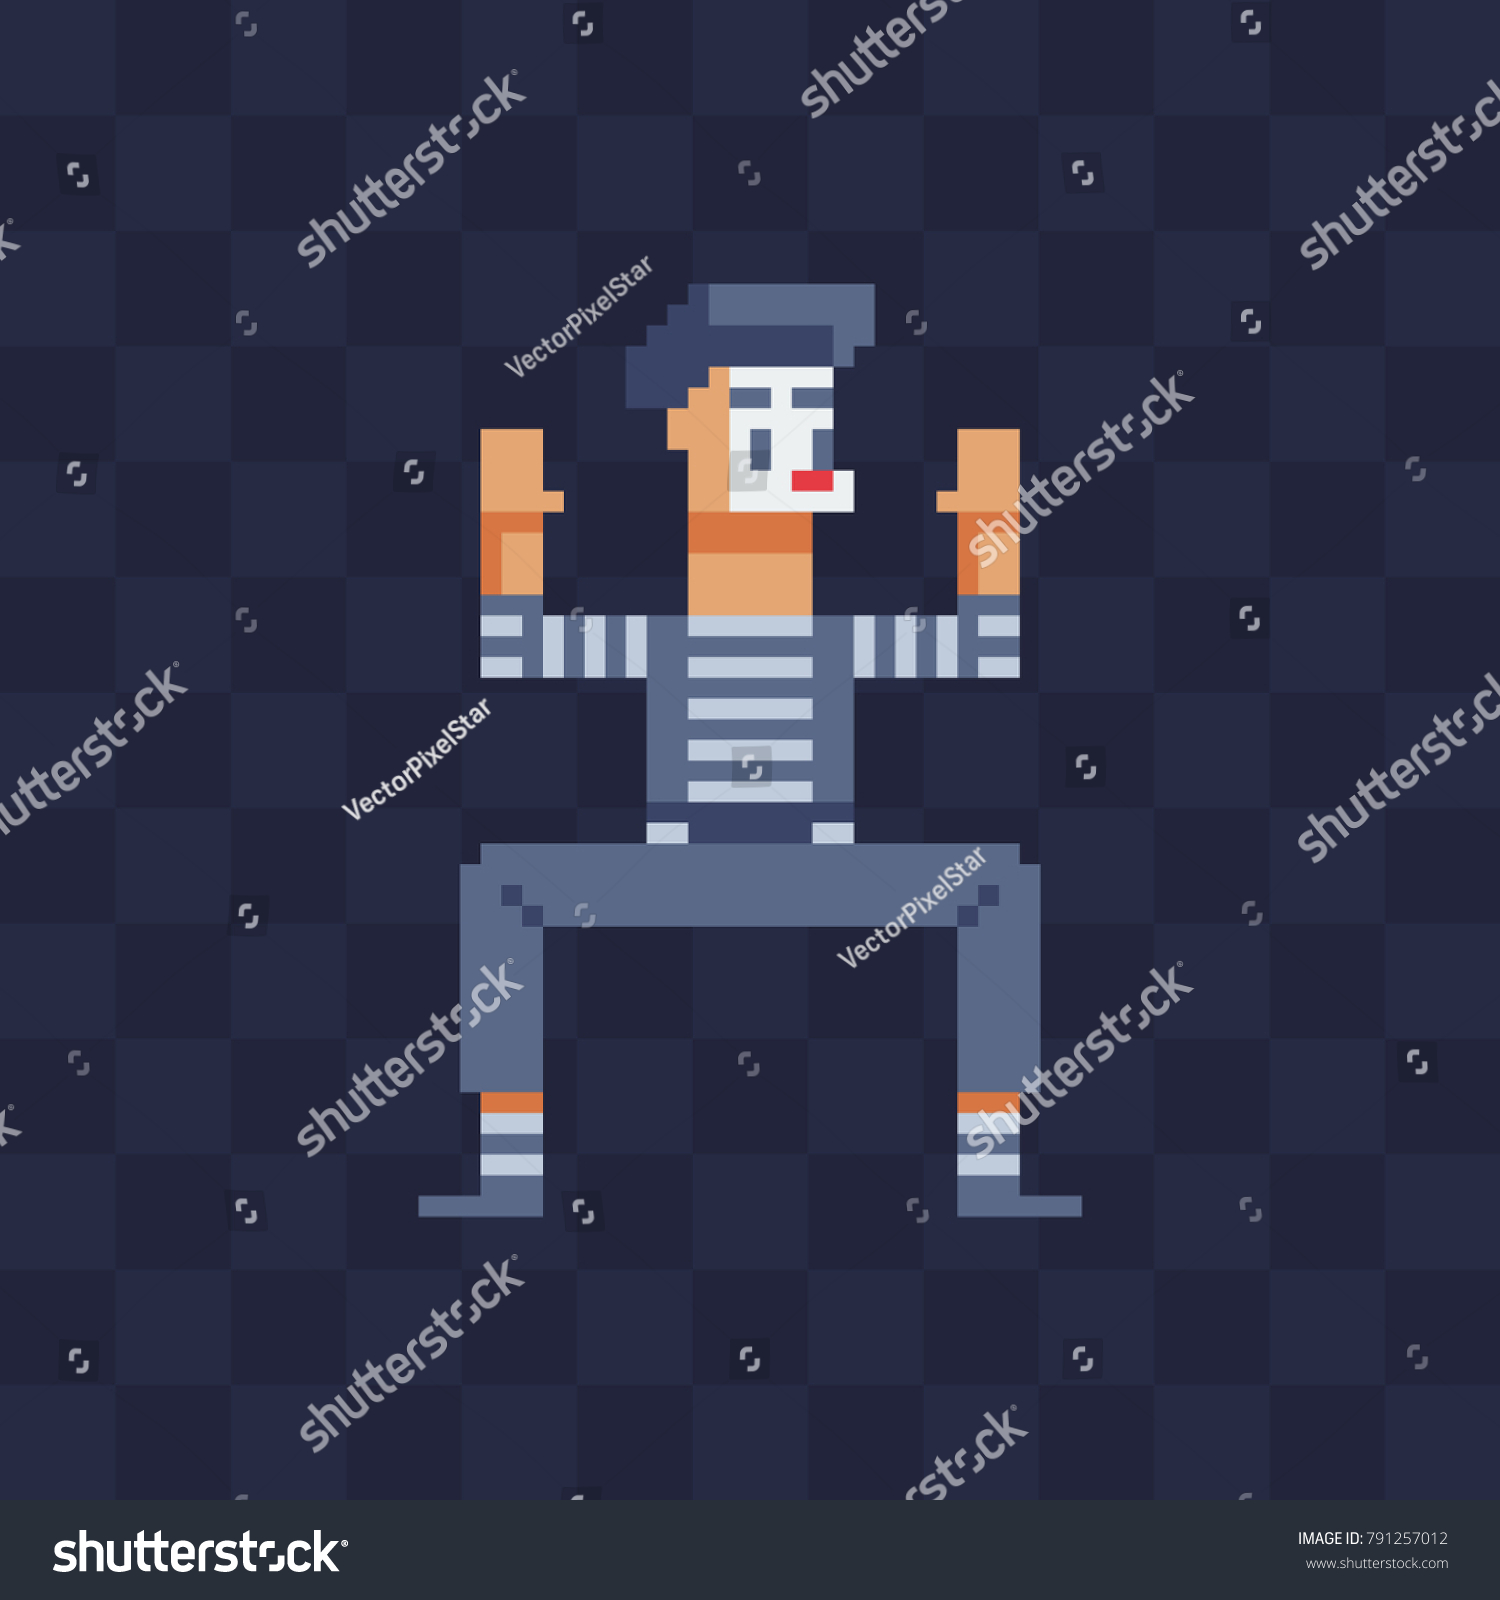 French Mime Artist Character Pixel Art Stock Vector 791257012